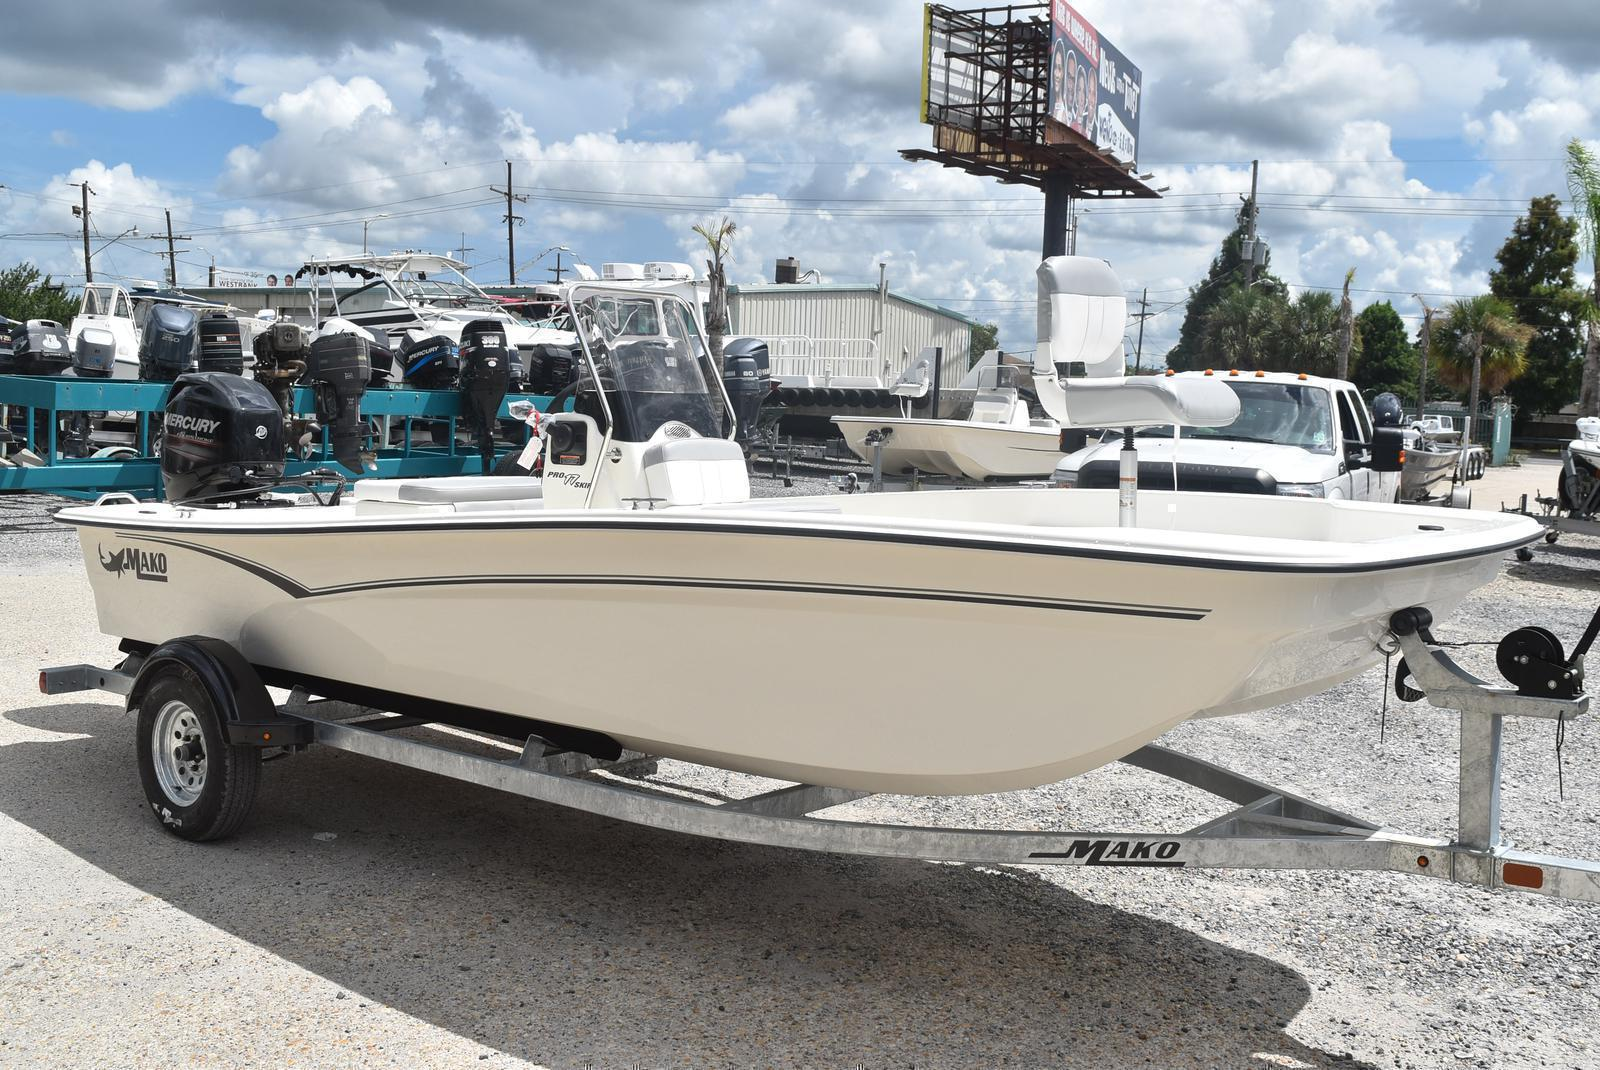 2020 Mako boat for sale, model of the boat is Pro Skiff 17, 75 ELPT & Image # 658 of 702